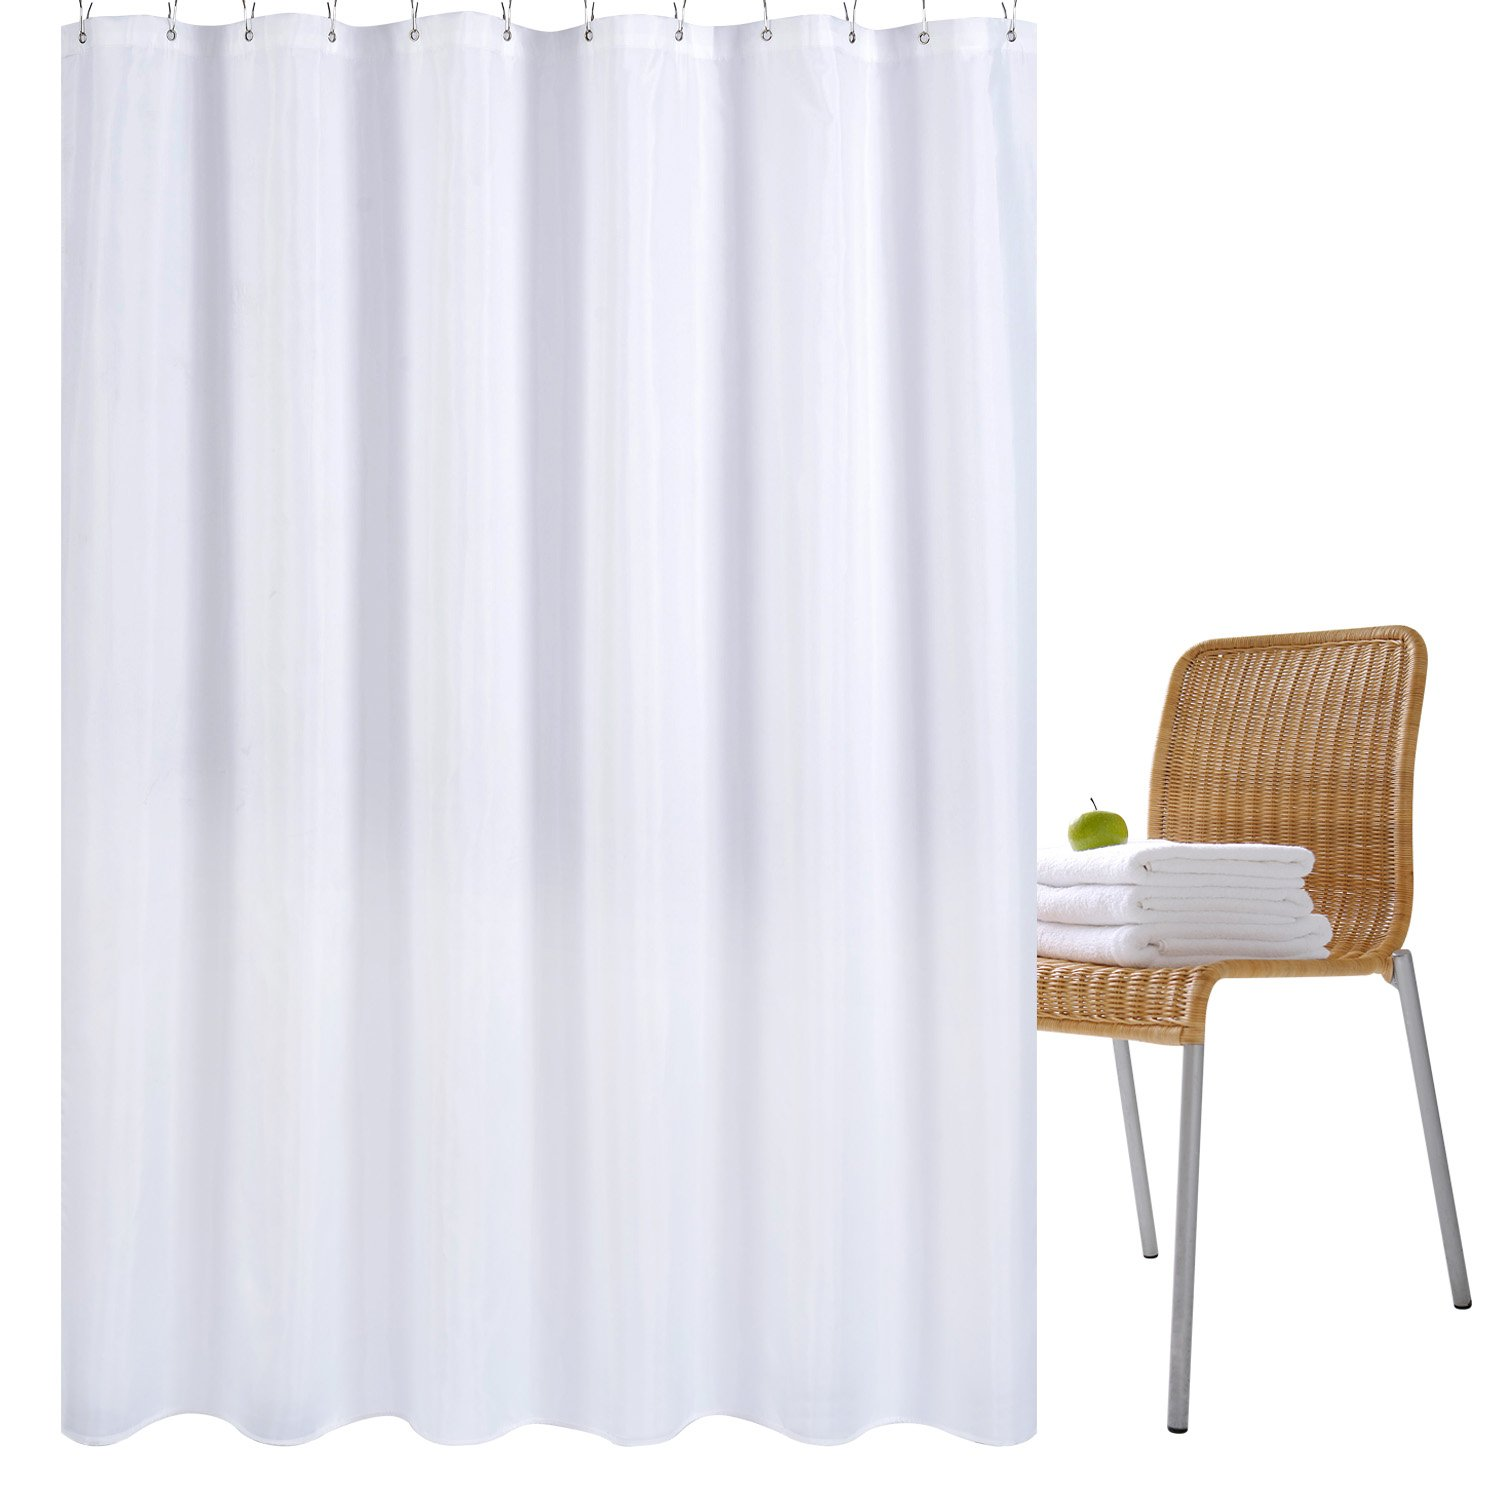 resistant mold cube shower plastic dp bathroom effect mildew curtains water free curtain fome